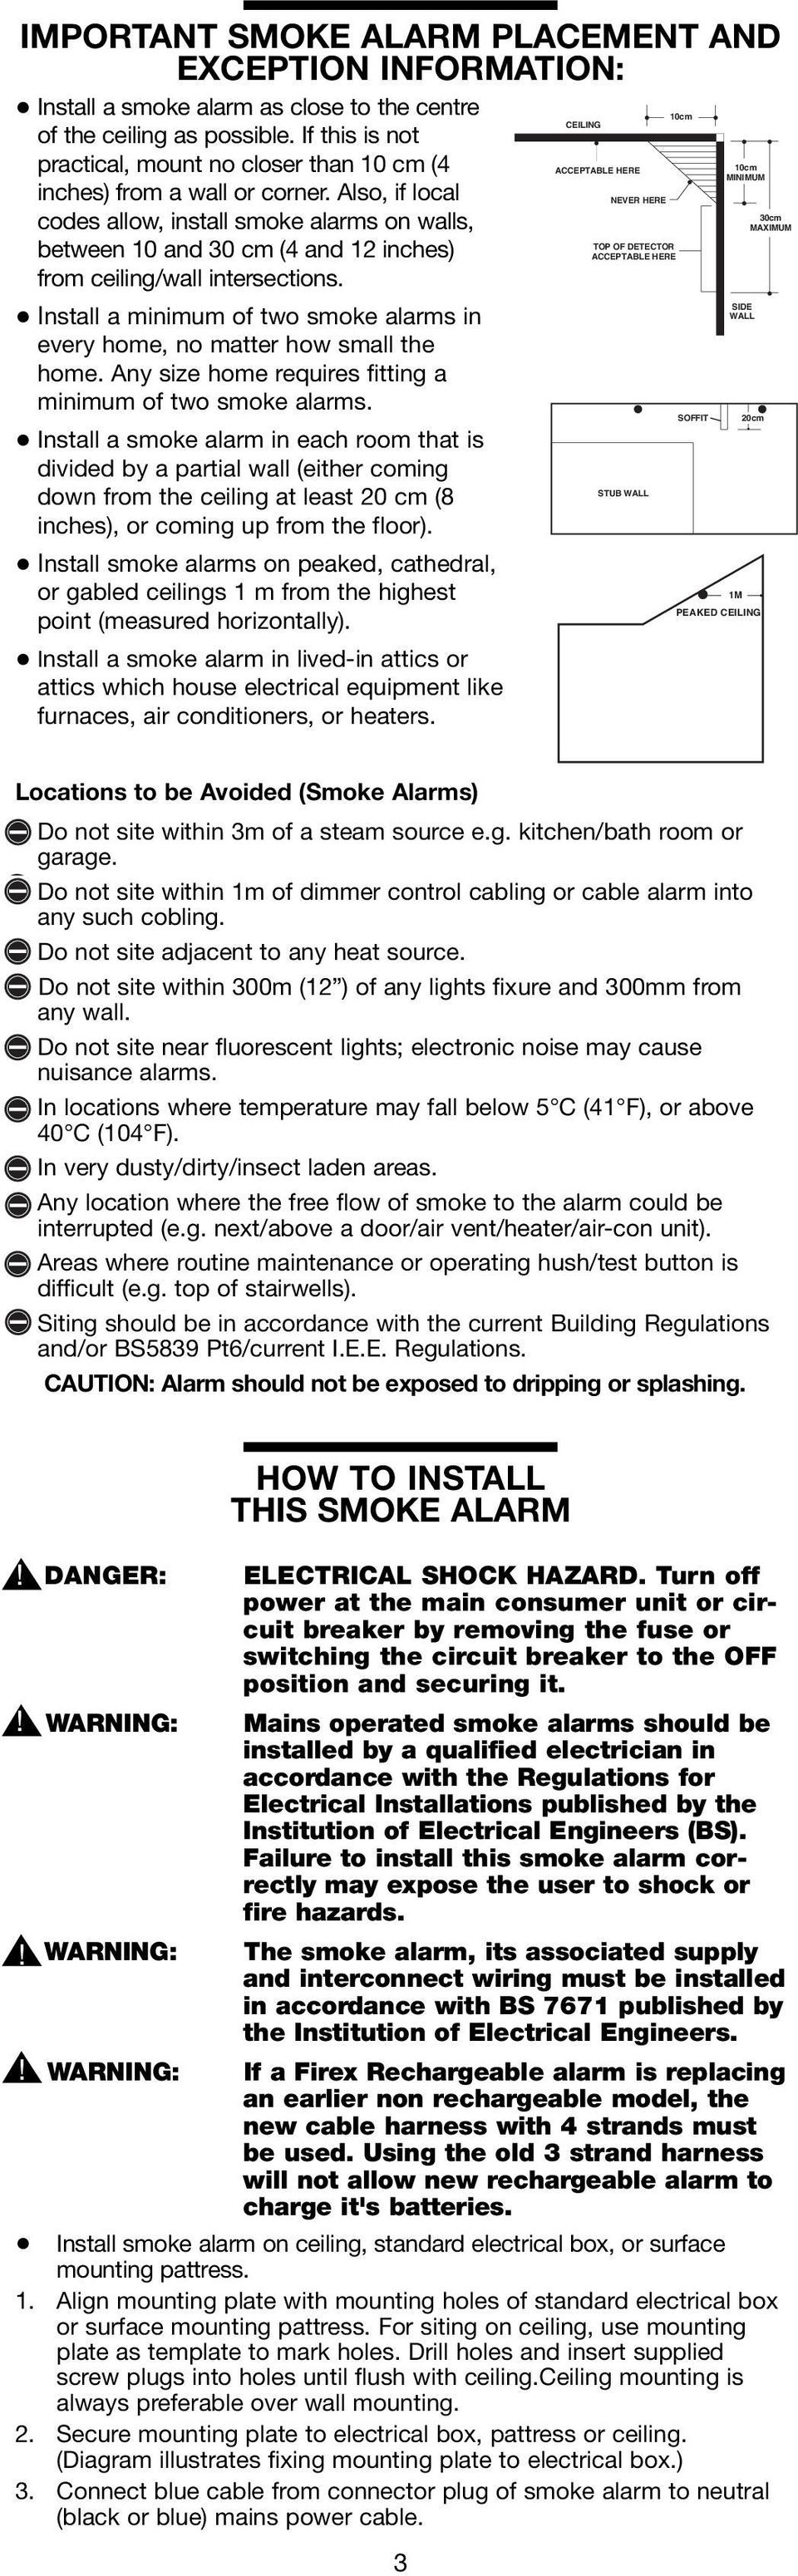 Also, if local NEVER HERE 30cm codes allow, install smoke alarms on walls, MAXIMUM TOP OF DETECTOR between 10 and 30 cm (4 and 12 inches) ACCEPTABLE HERE from ceiling/wall intersections.